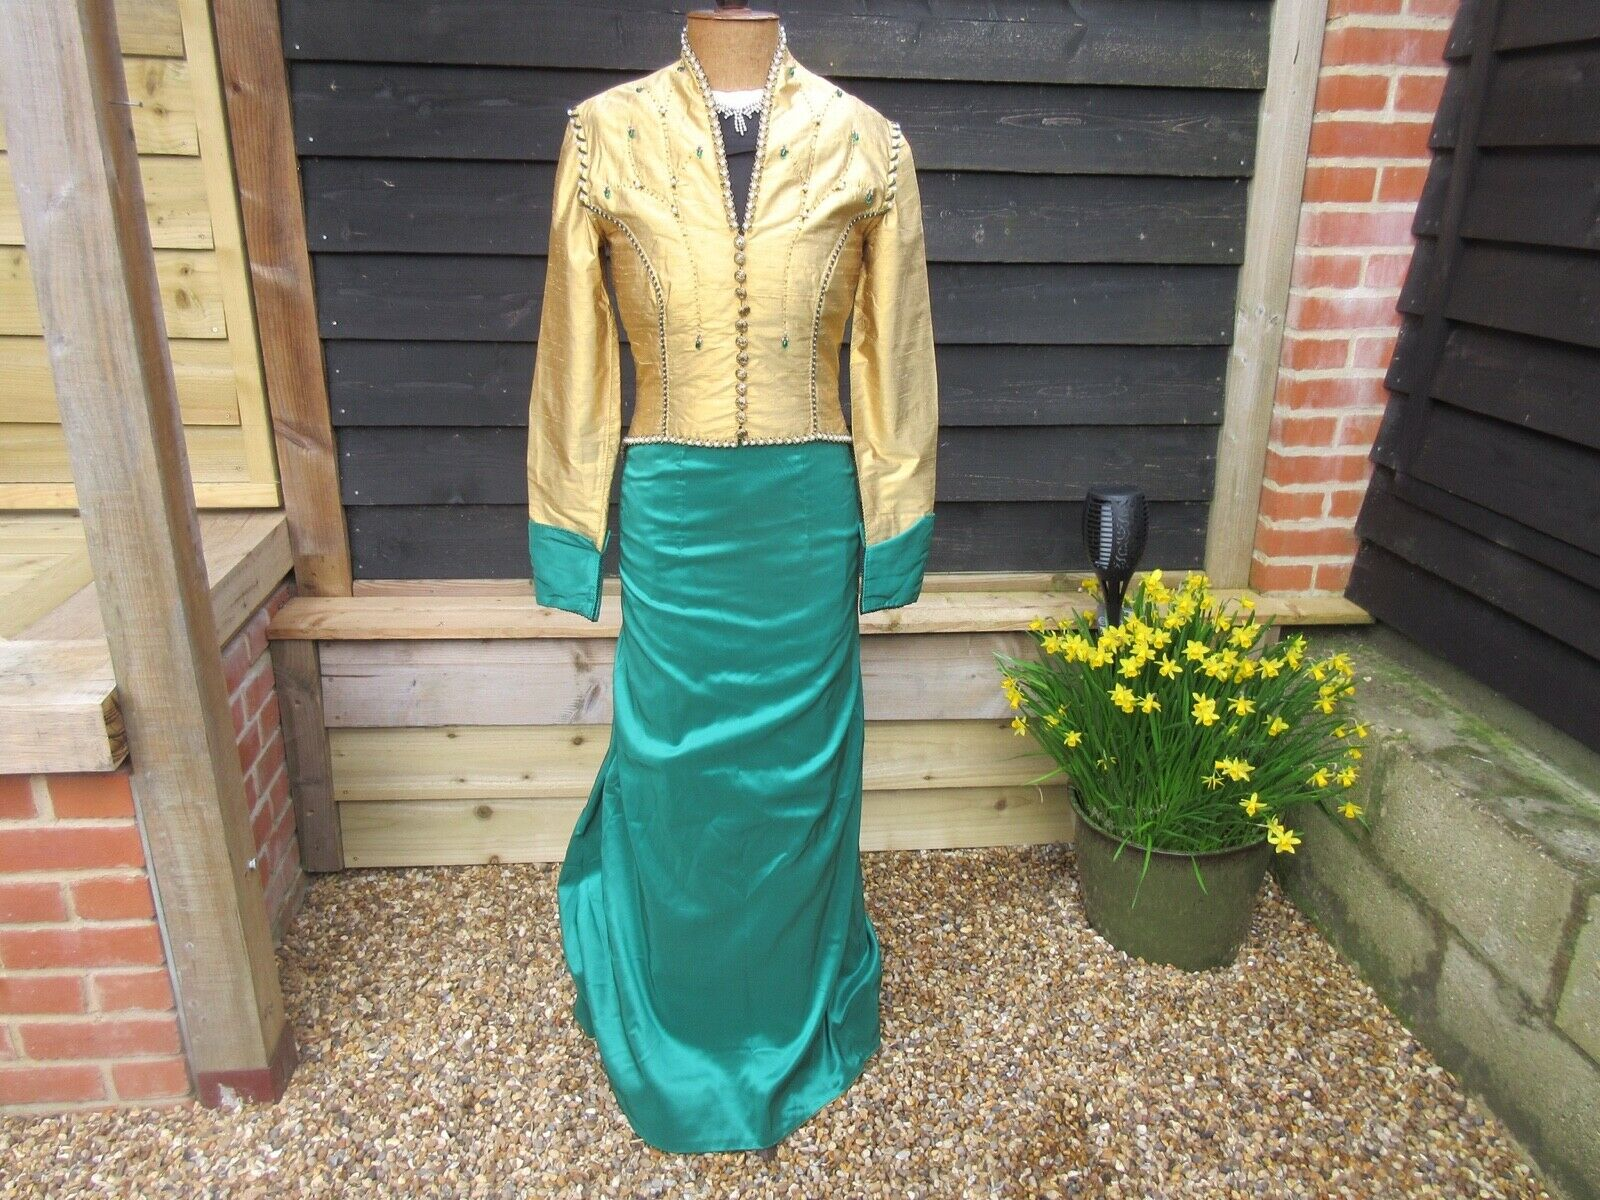 Vintage theatrical,special occasion costume gold pearl beaded jacket & skirt